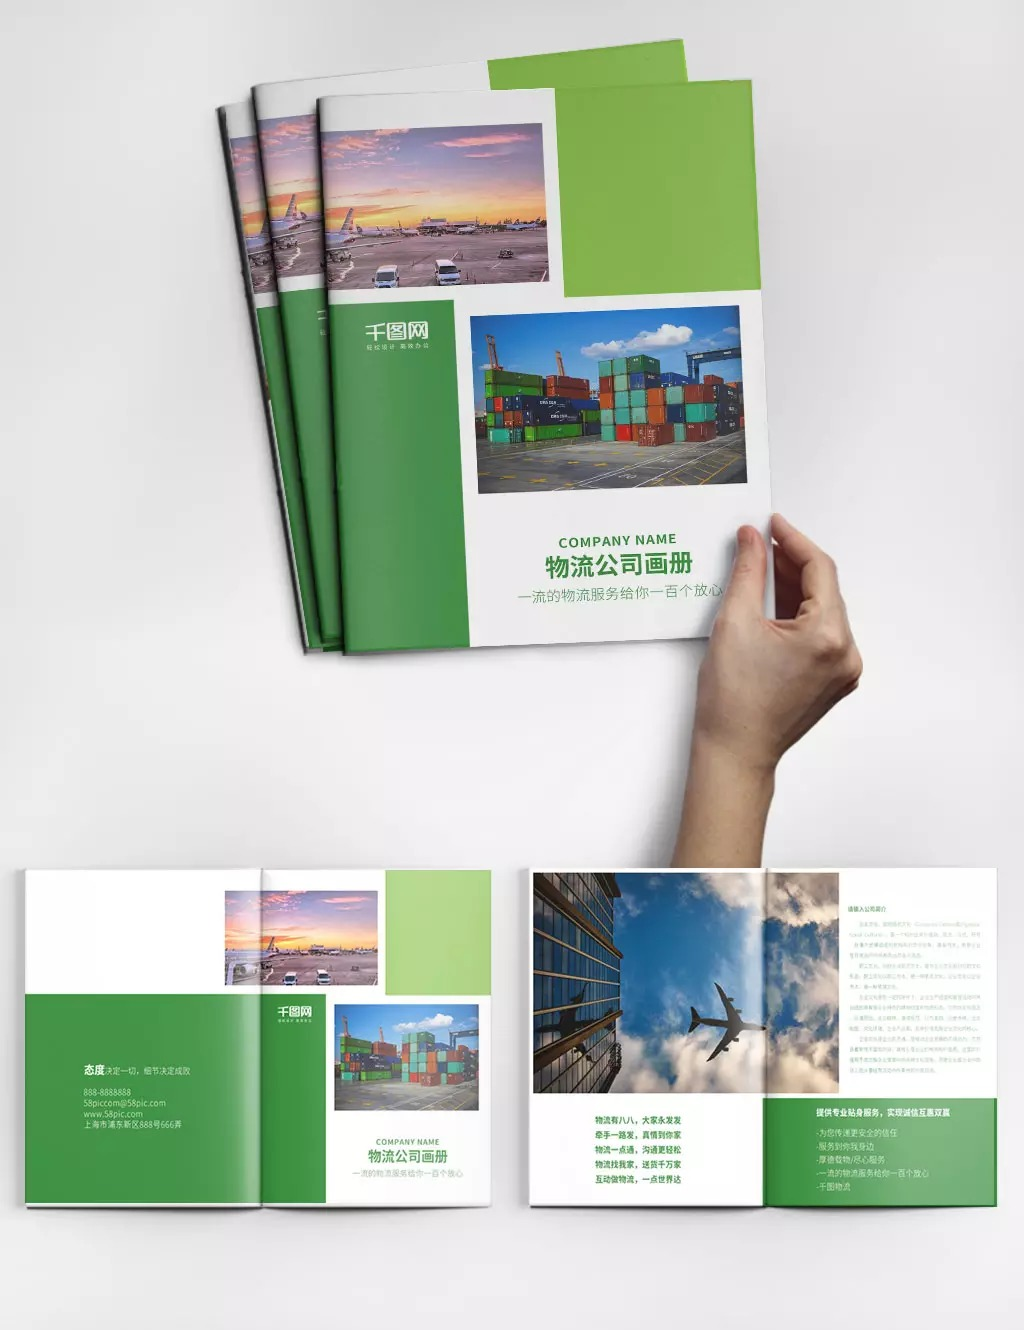 Atmospheric Green Logistics Company Album Design Psd Template